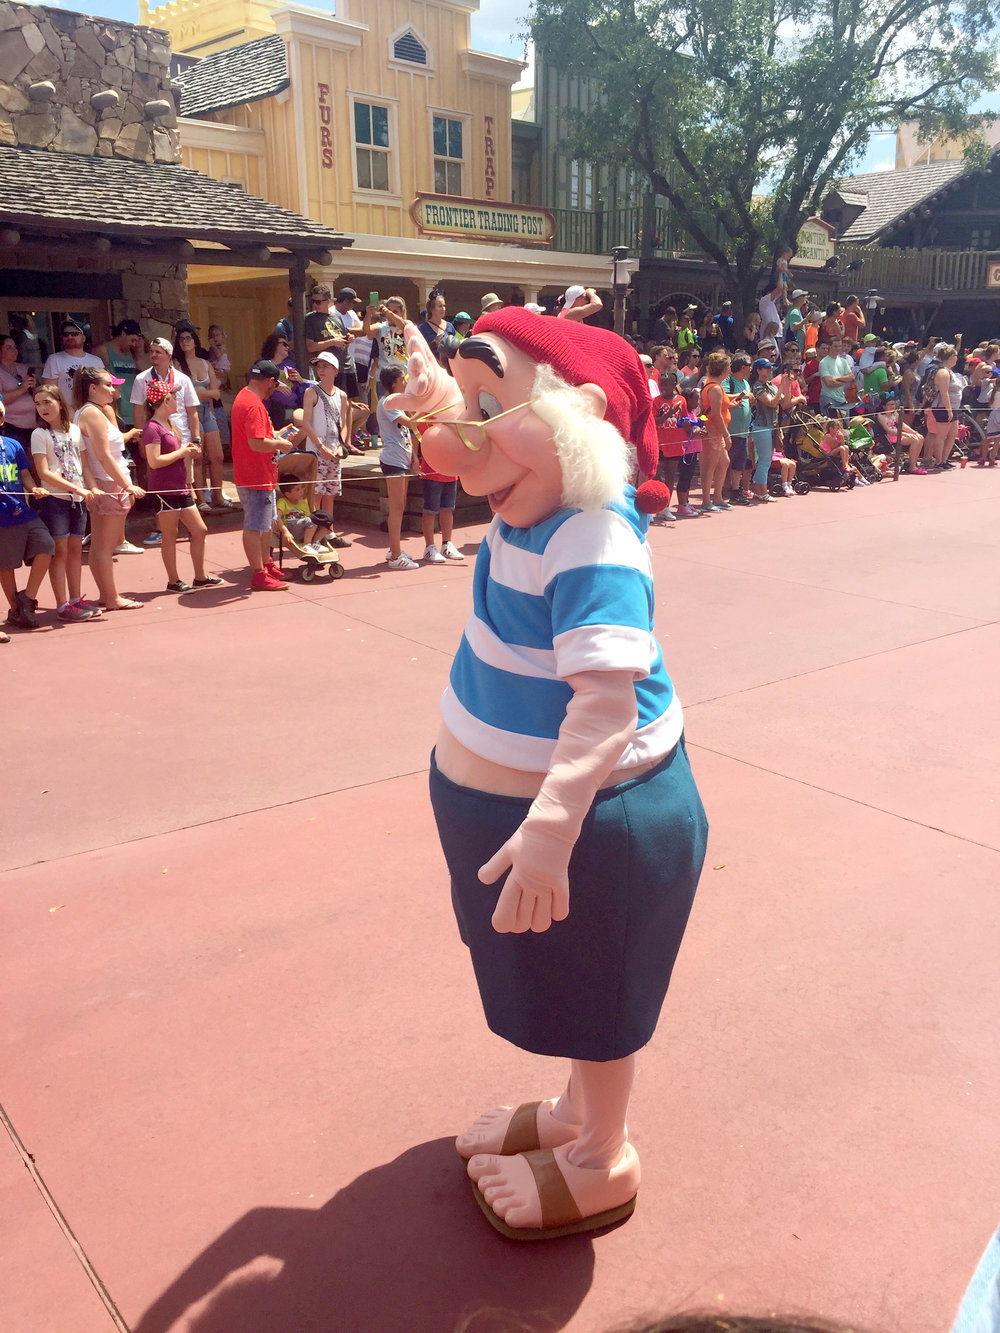 Following the Peter Pan float we see Mr. Smee. I'm so glad that they included him, because he is so rarely seen in the parks!